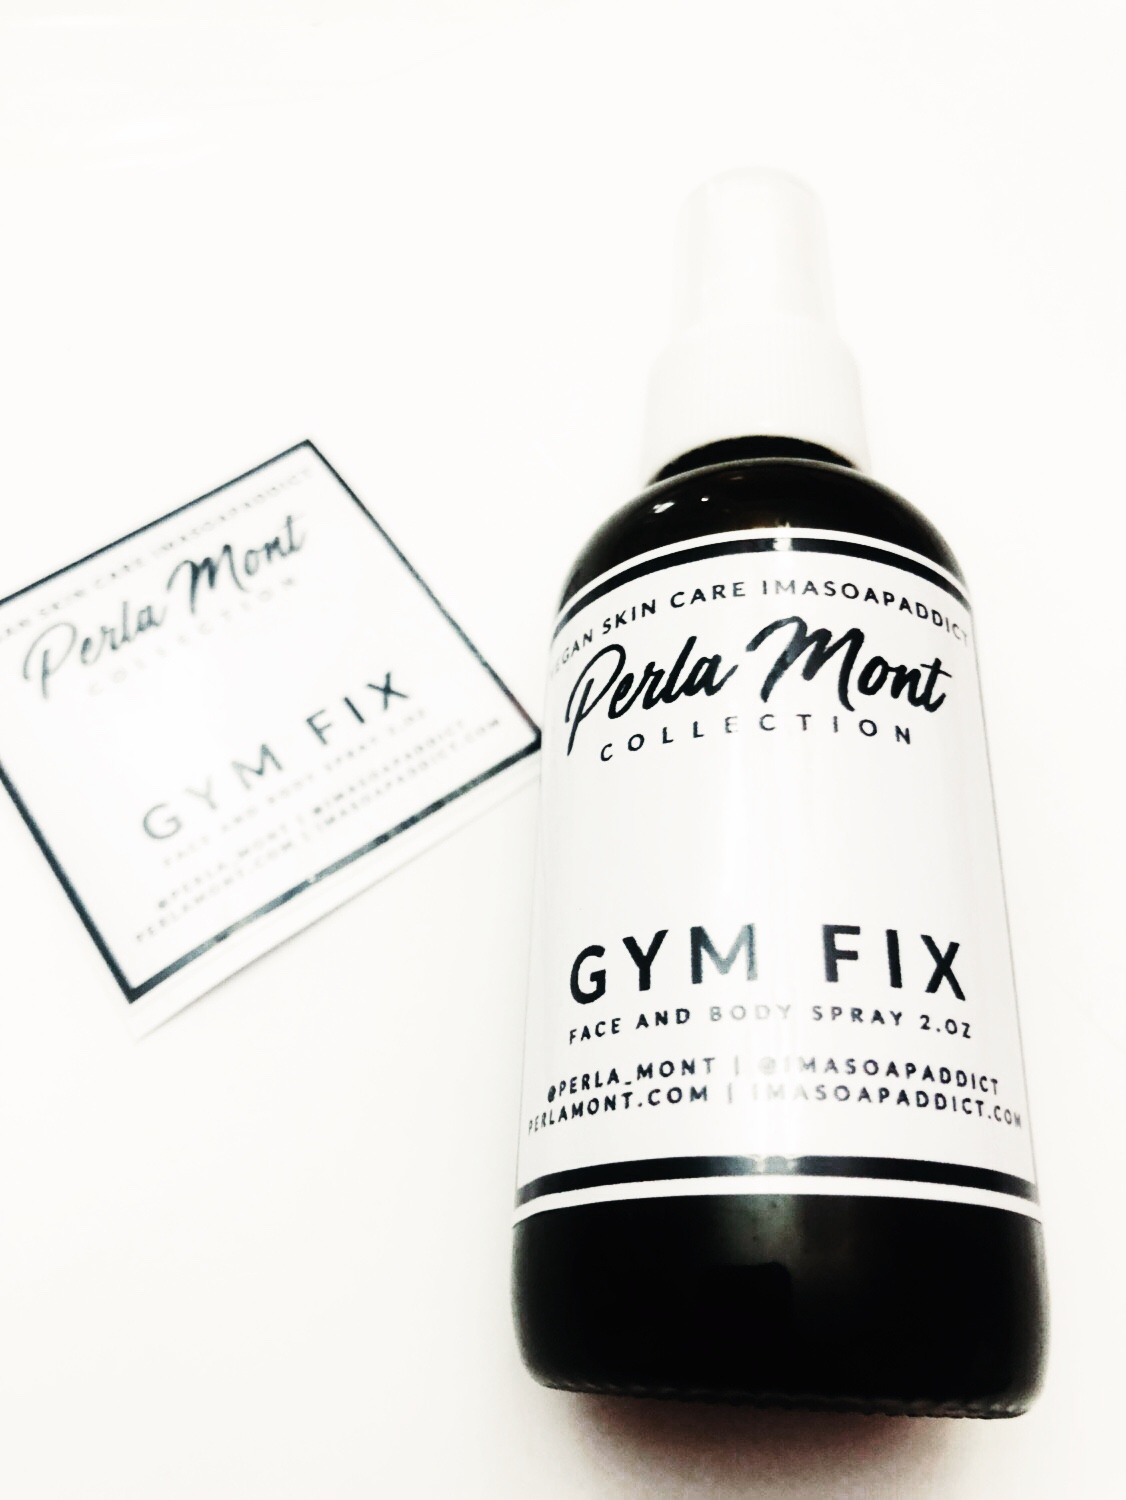 gym-fix-perla-mont-imasoapaddict1.jpeg